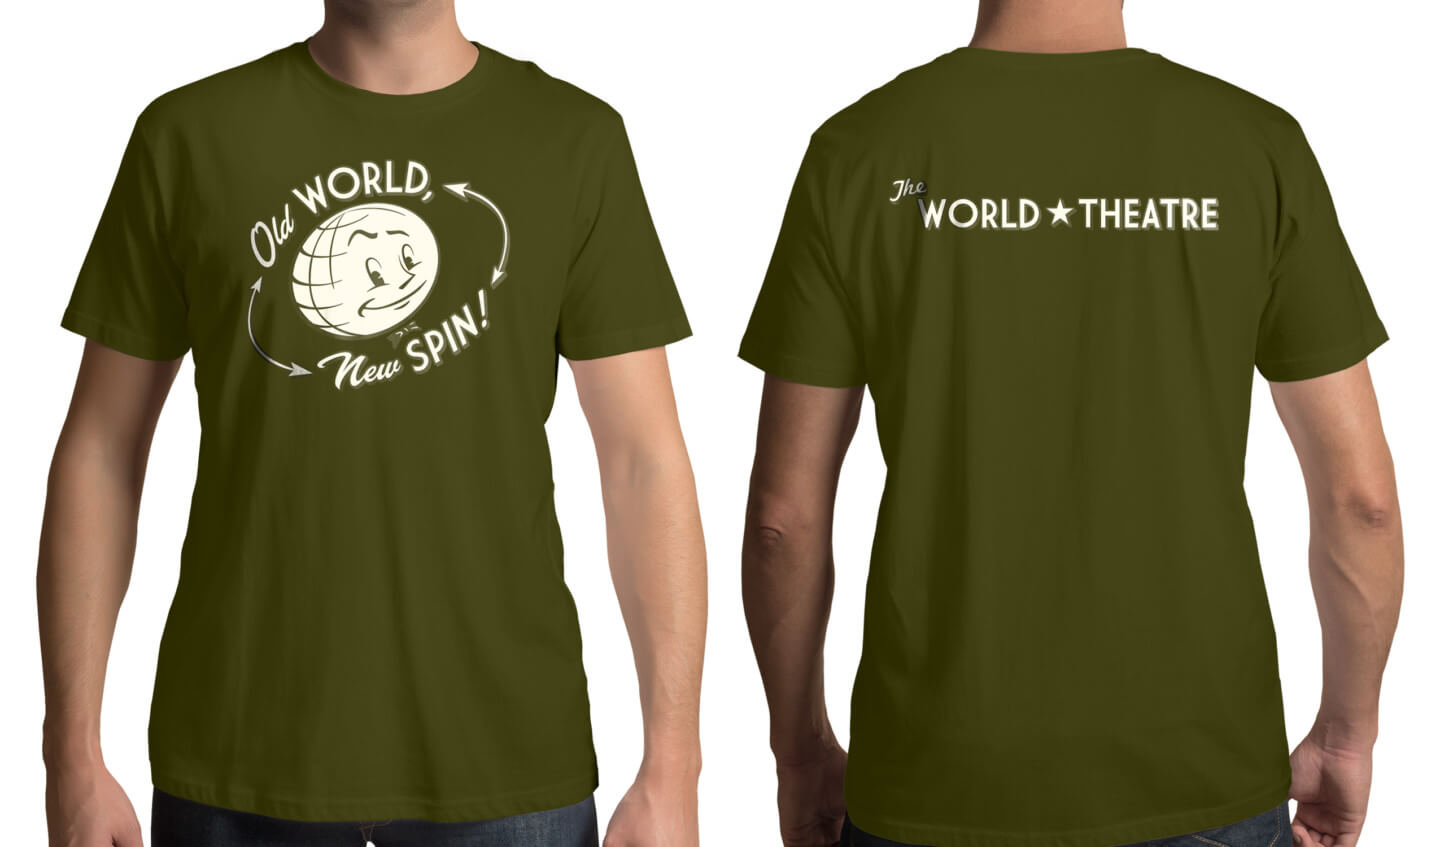 The World Theater shirt